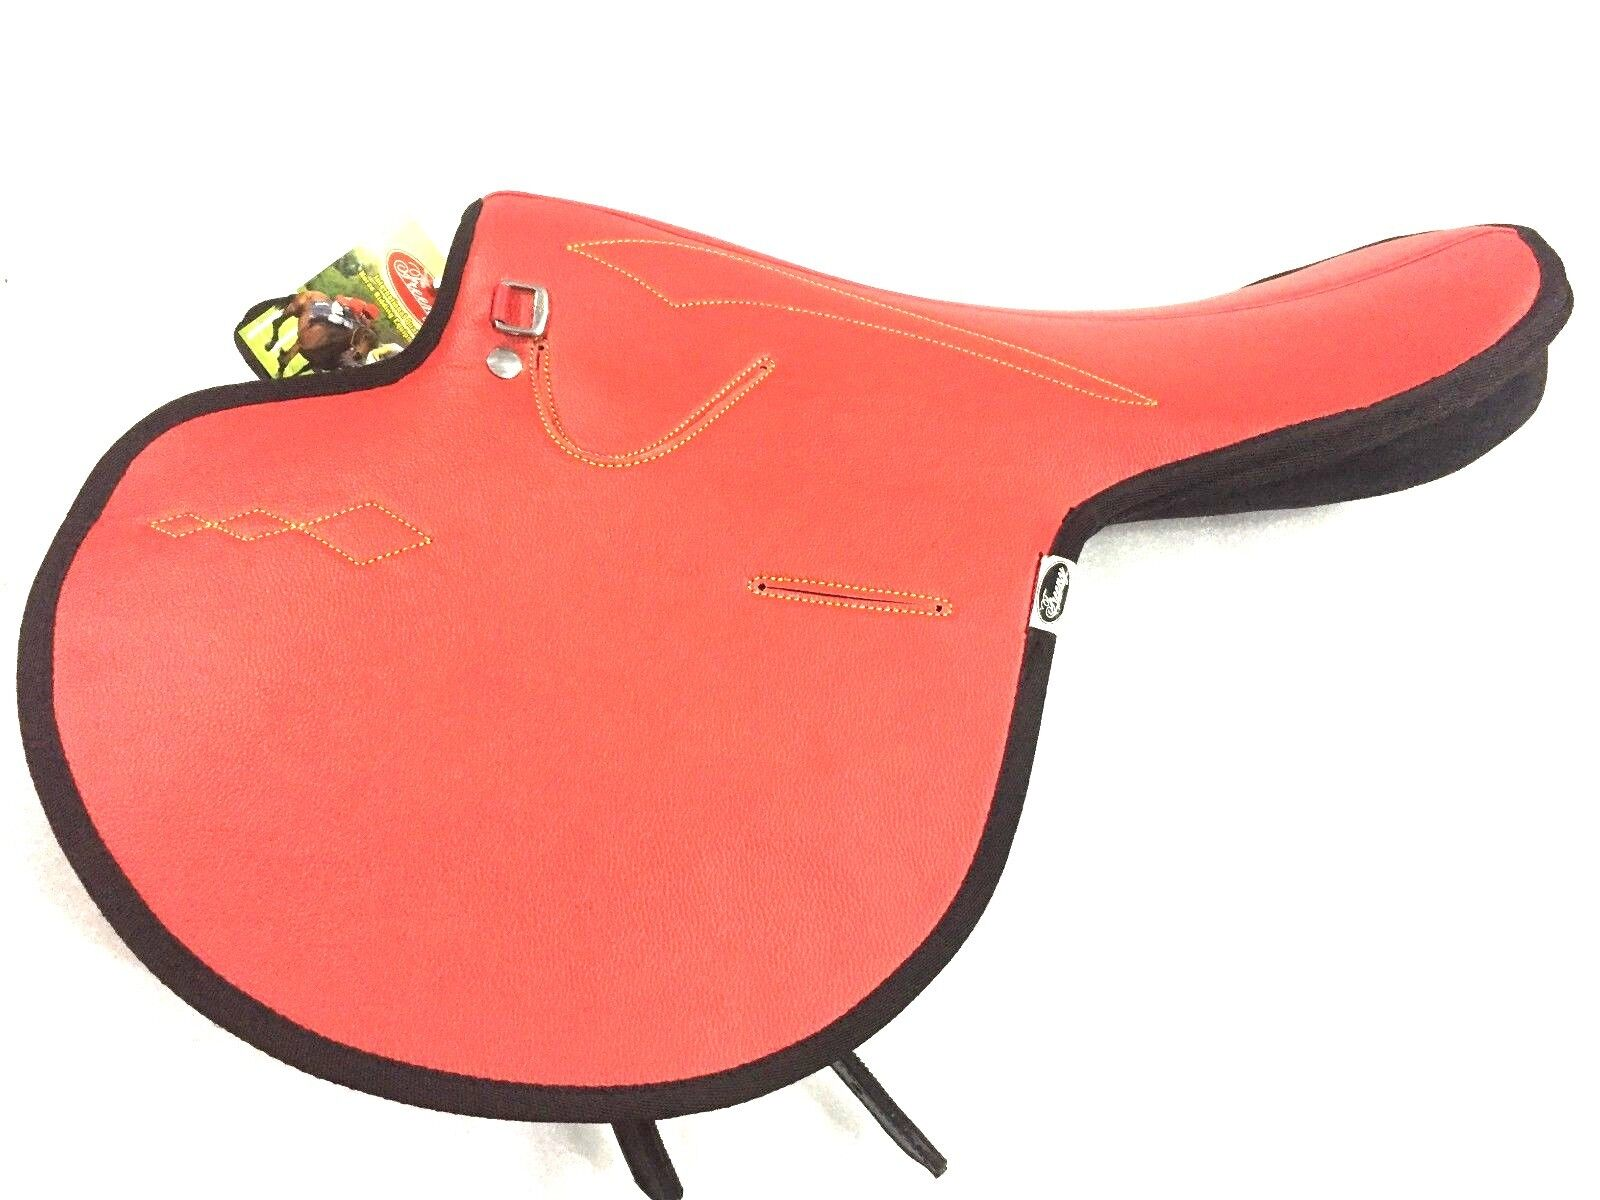 New International Quality  Freeny Synthetic Race Exercise Saddle Light Weight  clearance